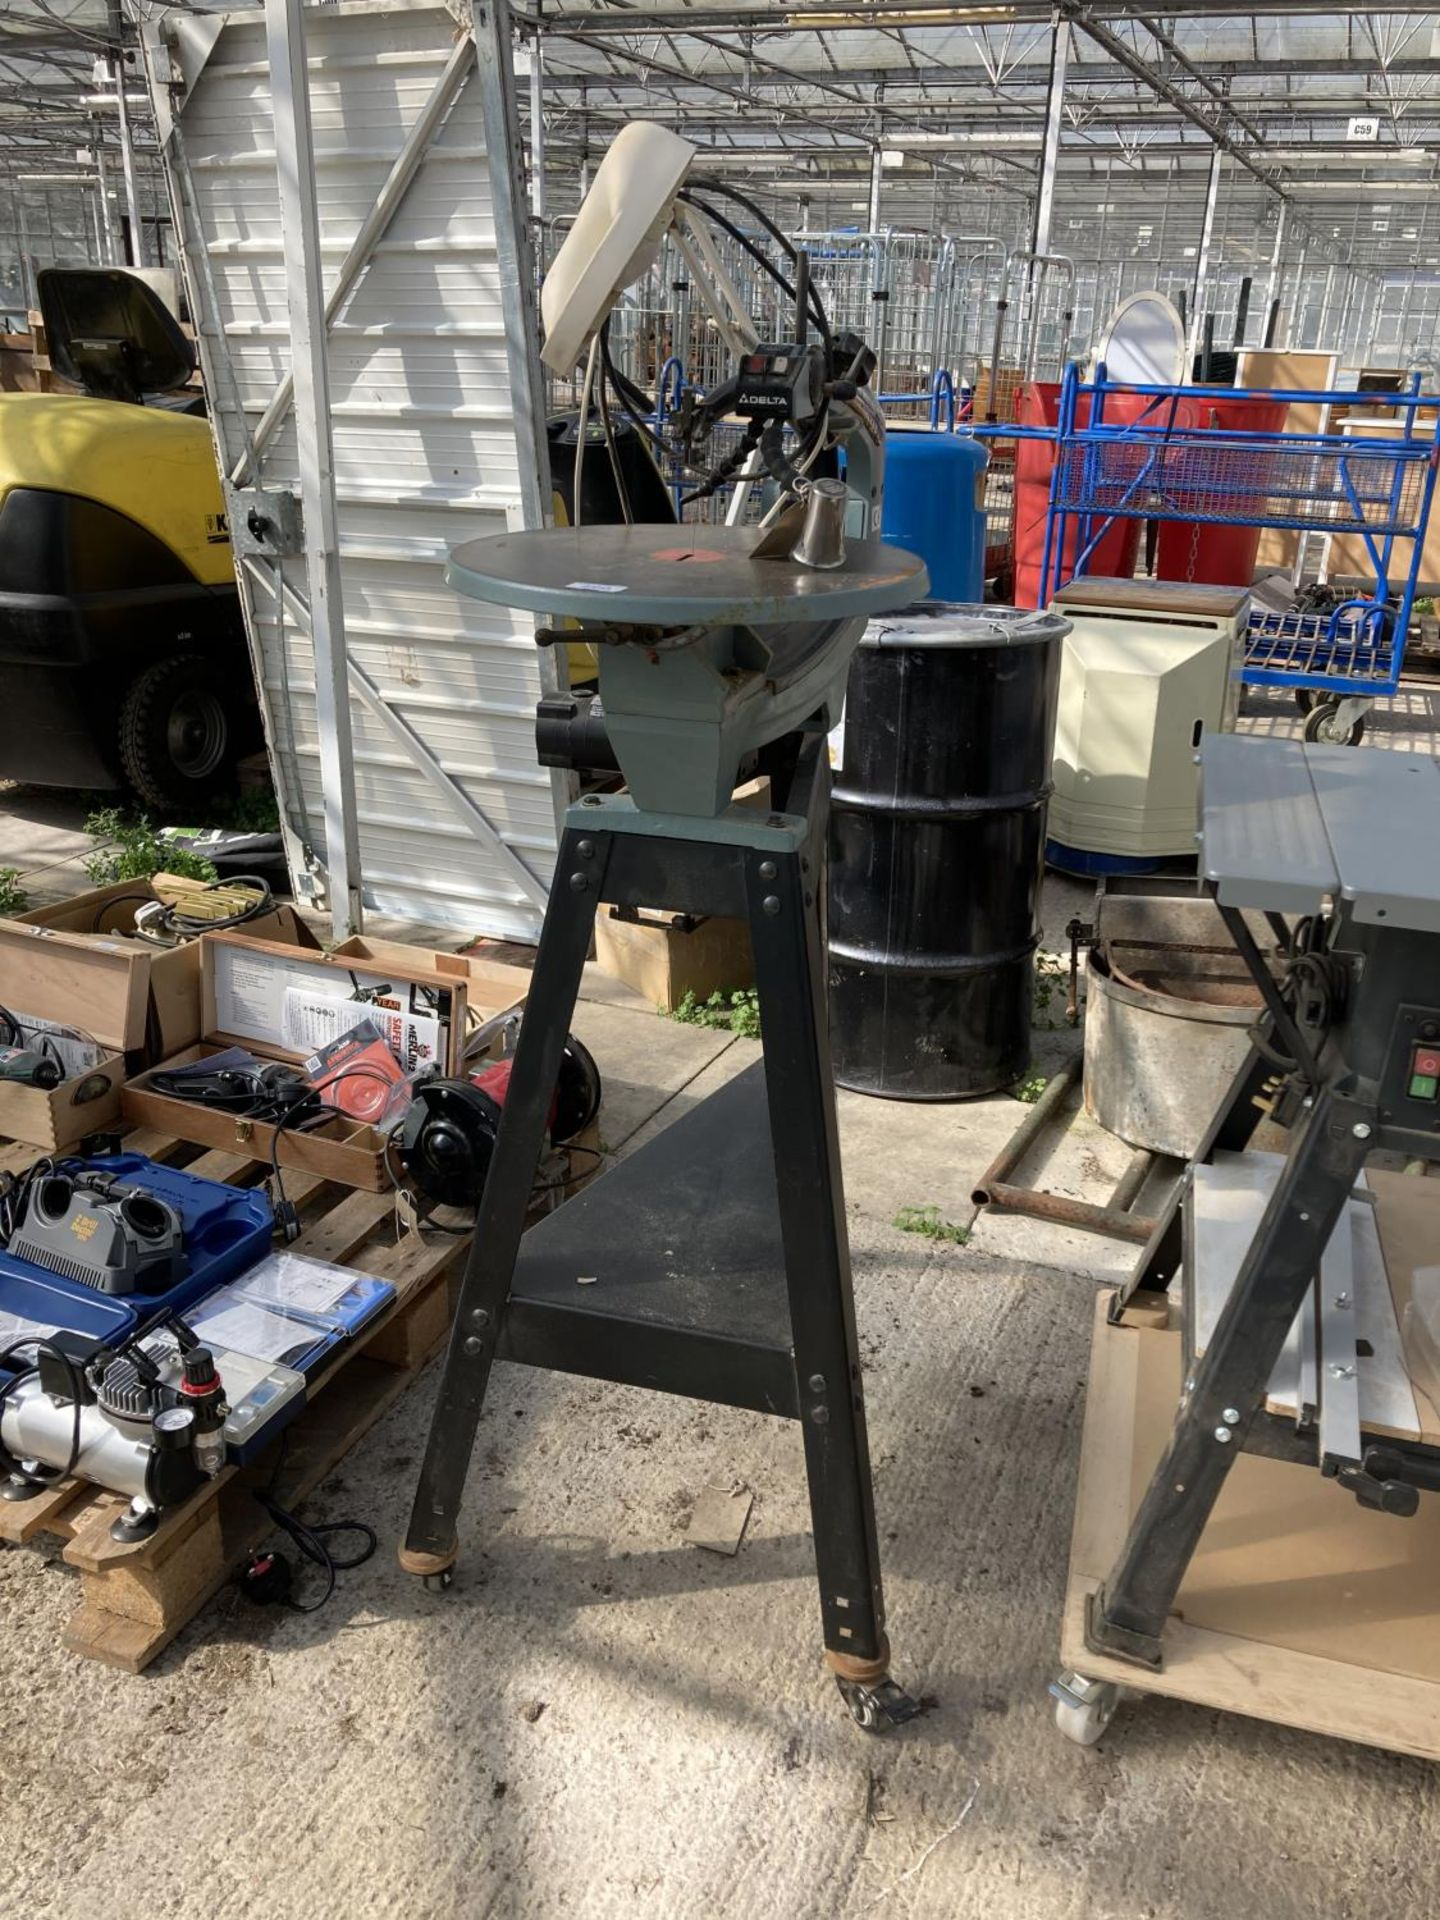 A DELTA 18 INCH VARIABLE SPEED SCROLL SAW ON WHEELS NO VAT - Image 2 of 3